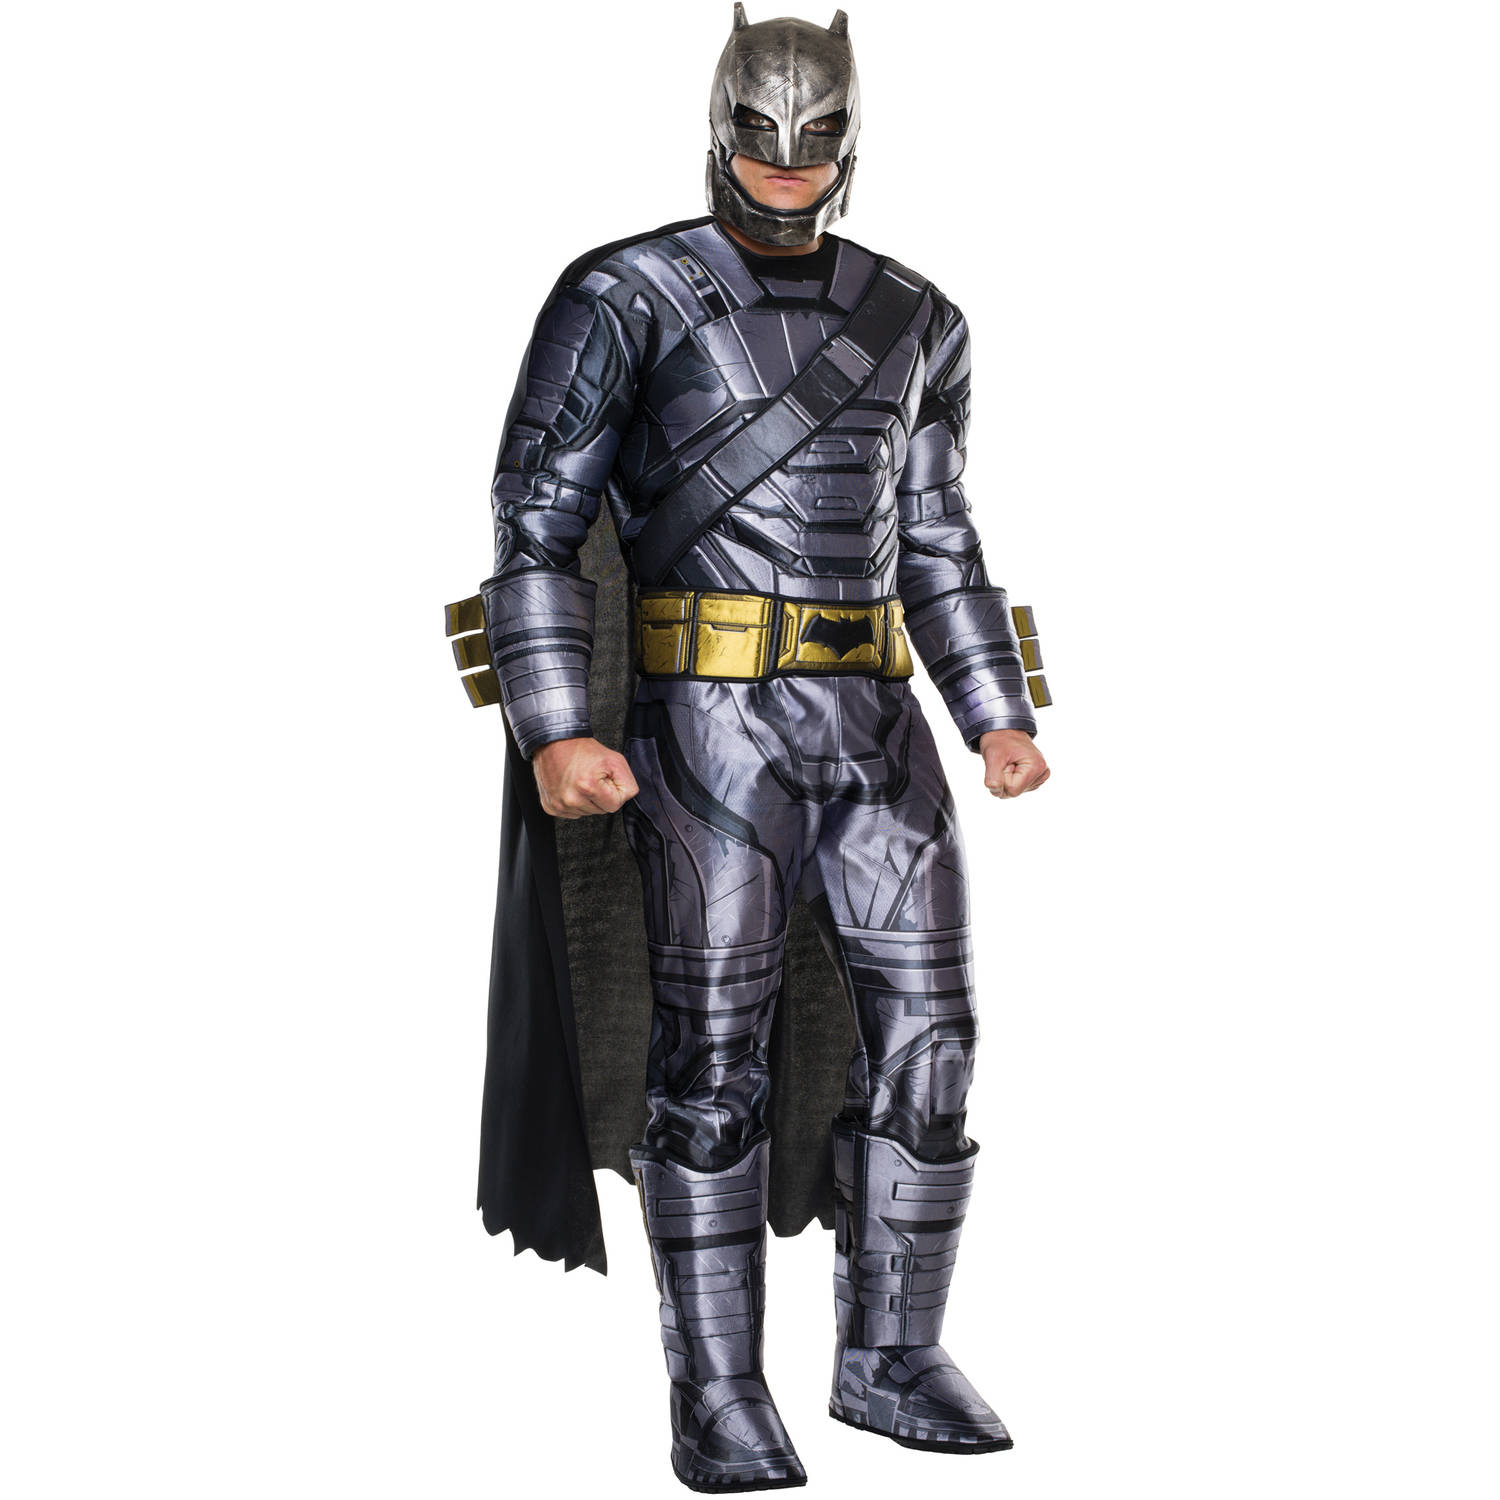 Deluxe Batman Armored Adult Halloween Costume